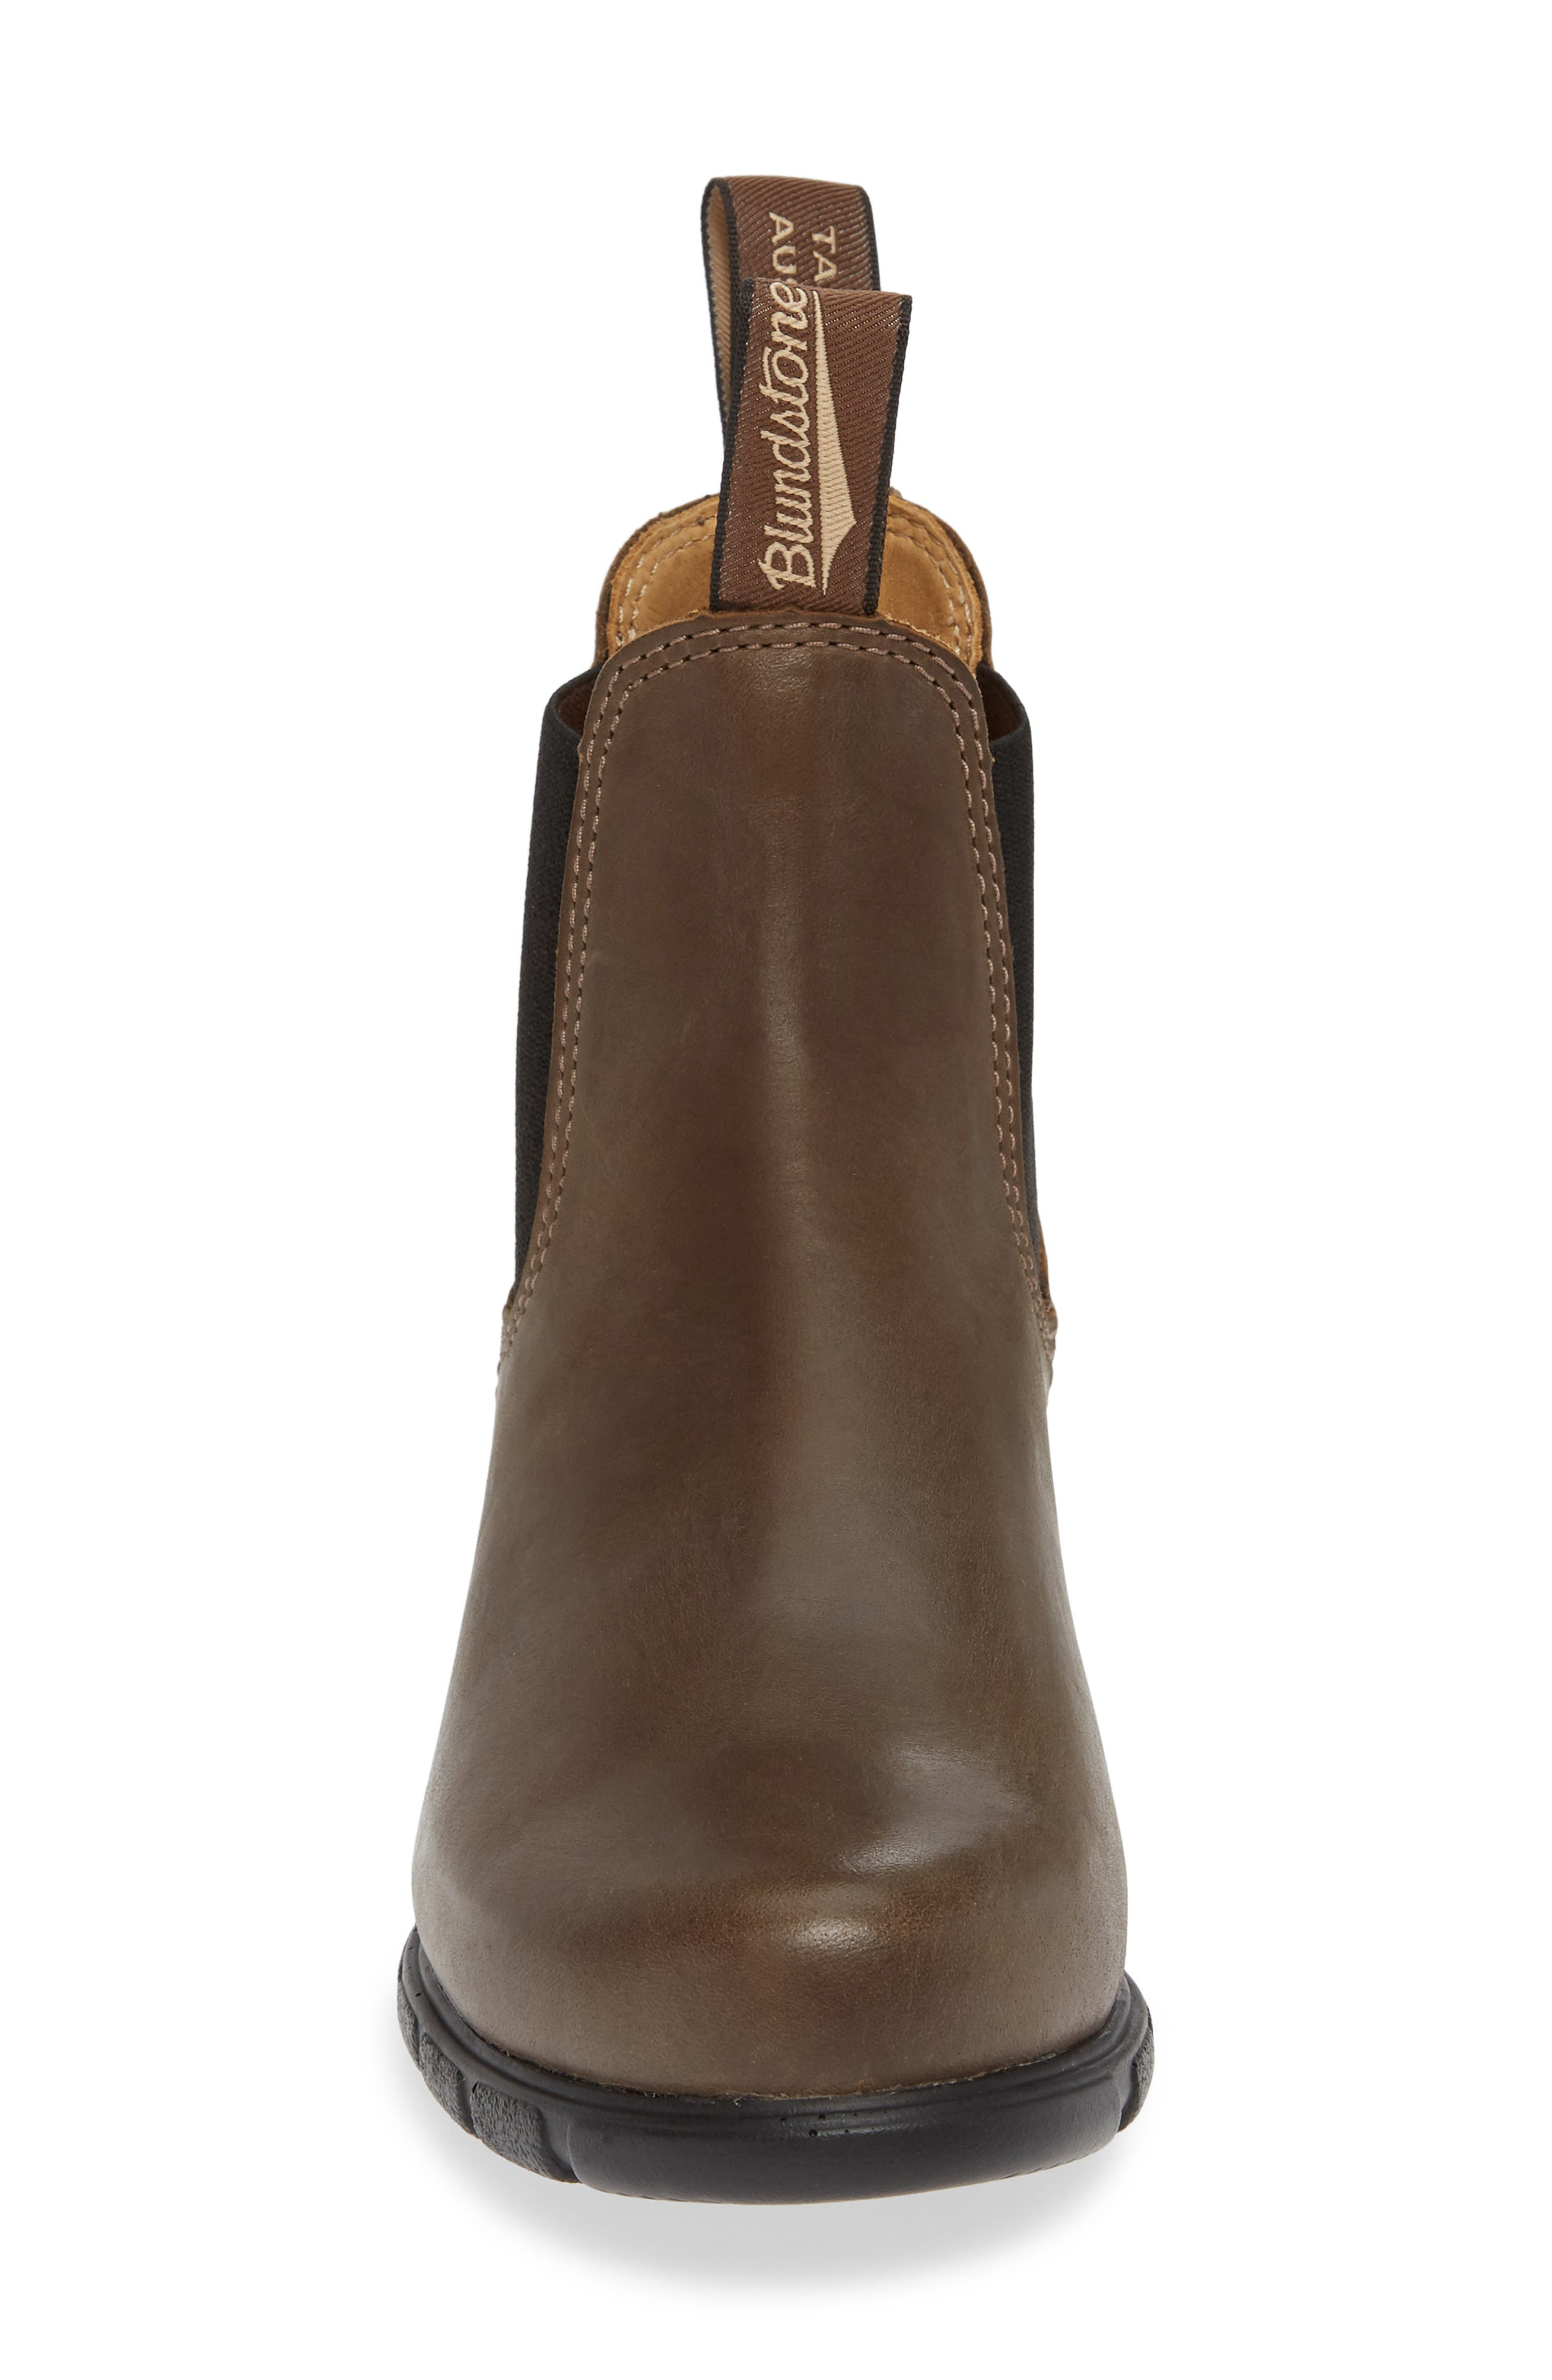 1671 Chelsea Boot,                             Alternate thumbnail 4, color,                             ANTIQUE TAUPE LEATHER